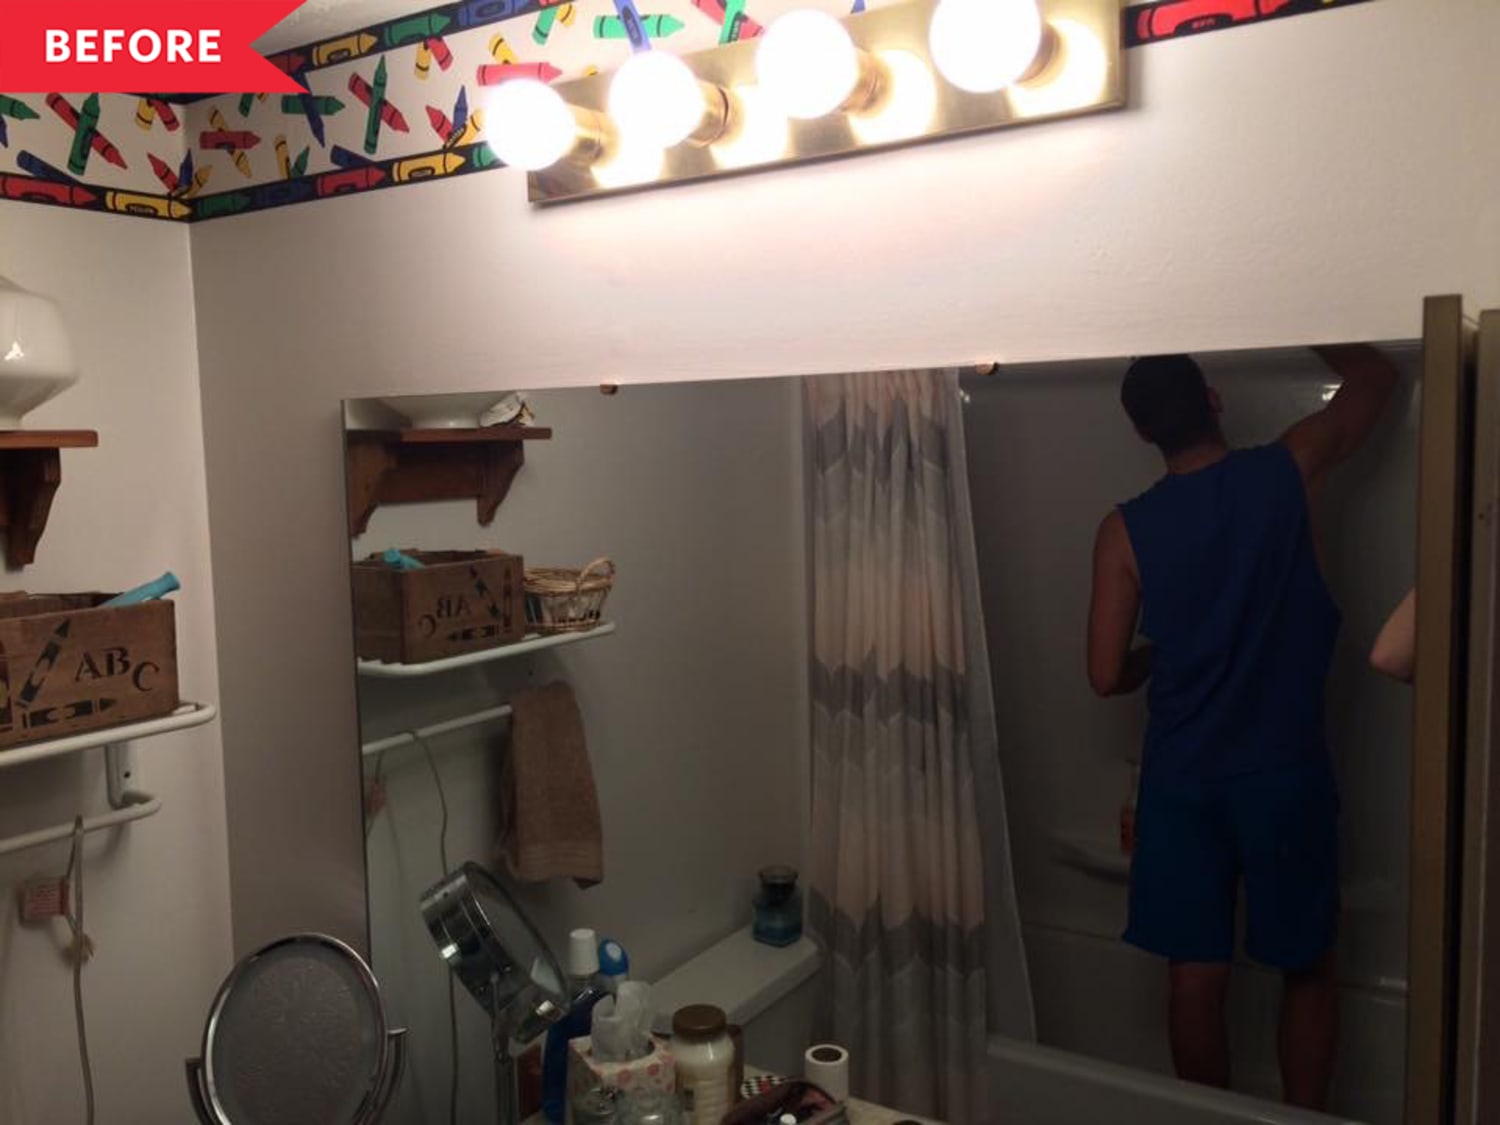 Before and After: A Bright, Cheery DIY Bathroom Overhaul for Just $1,500